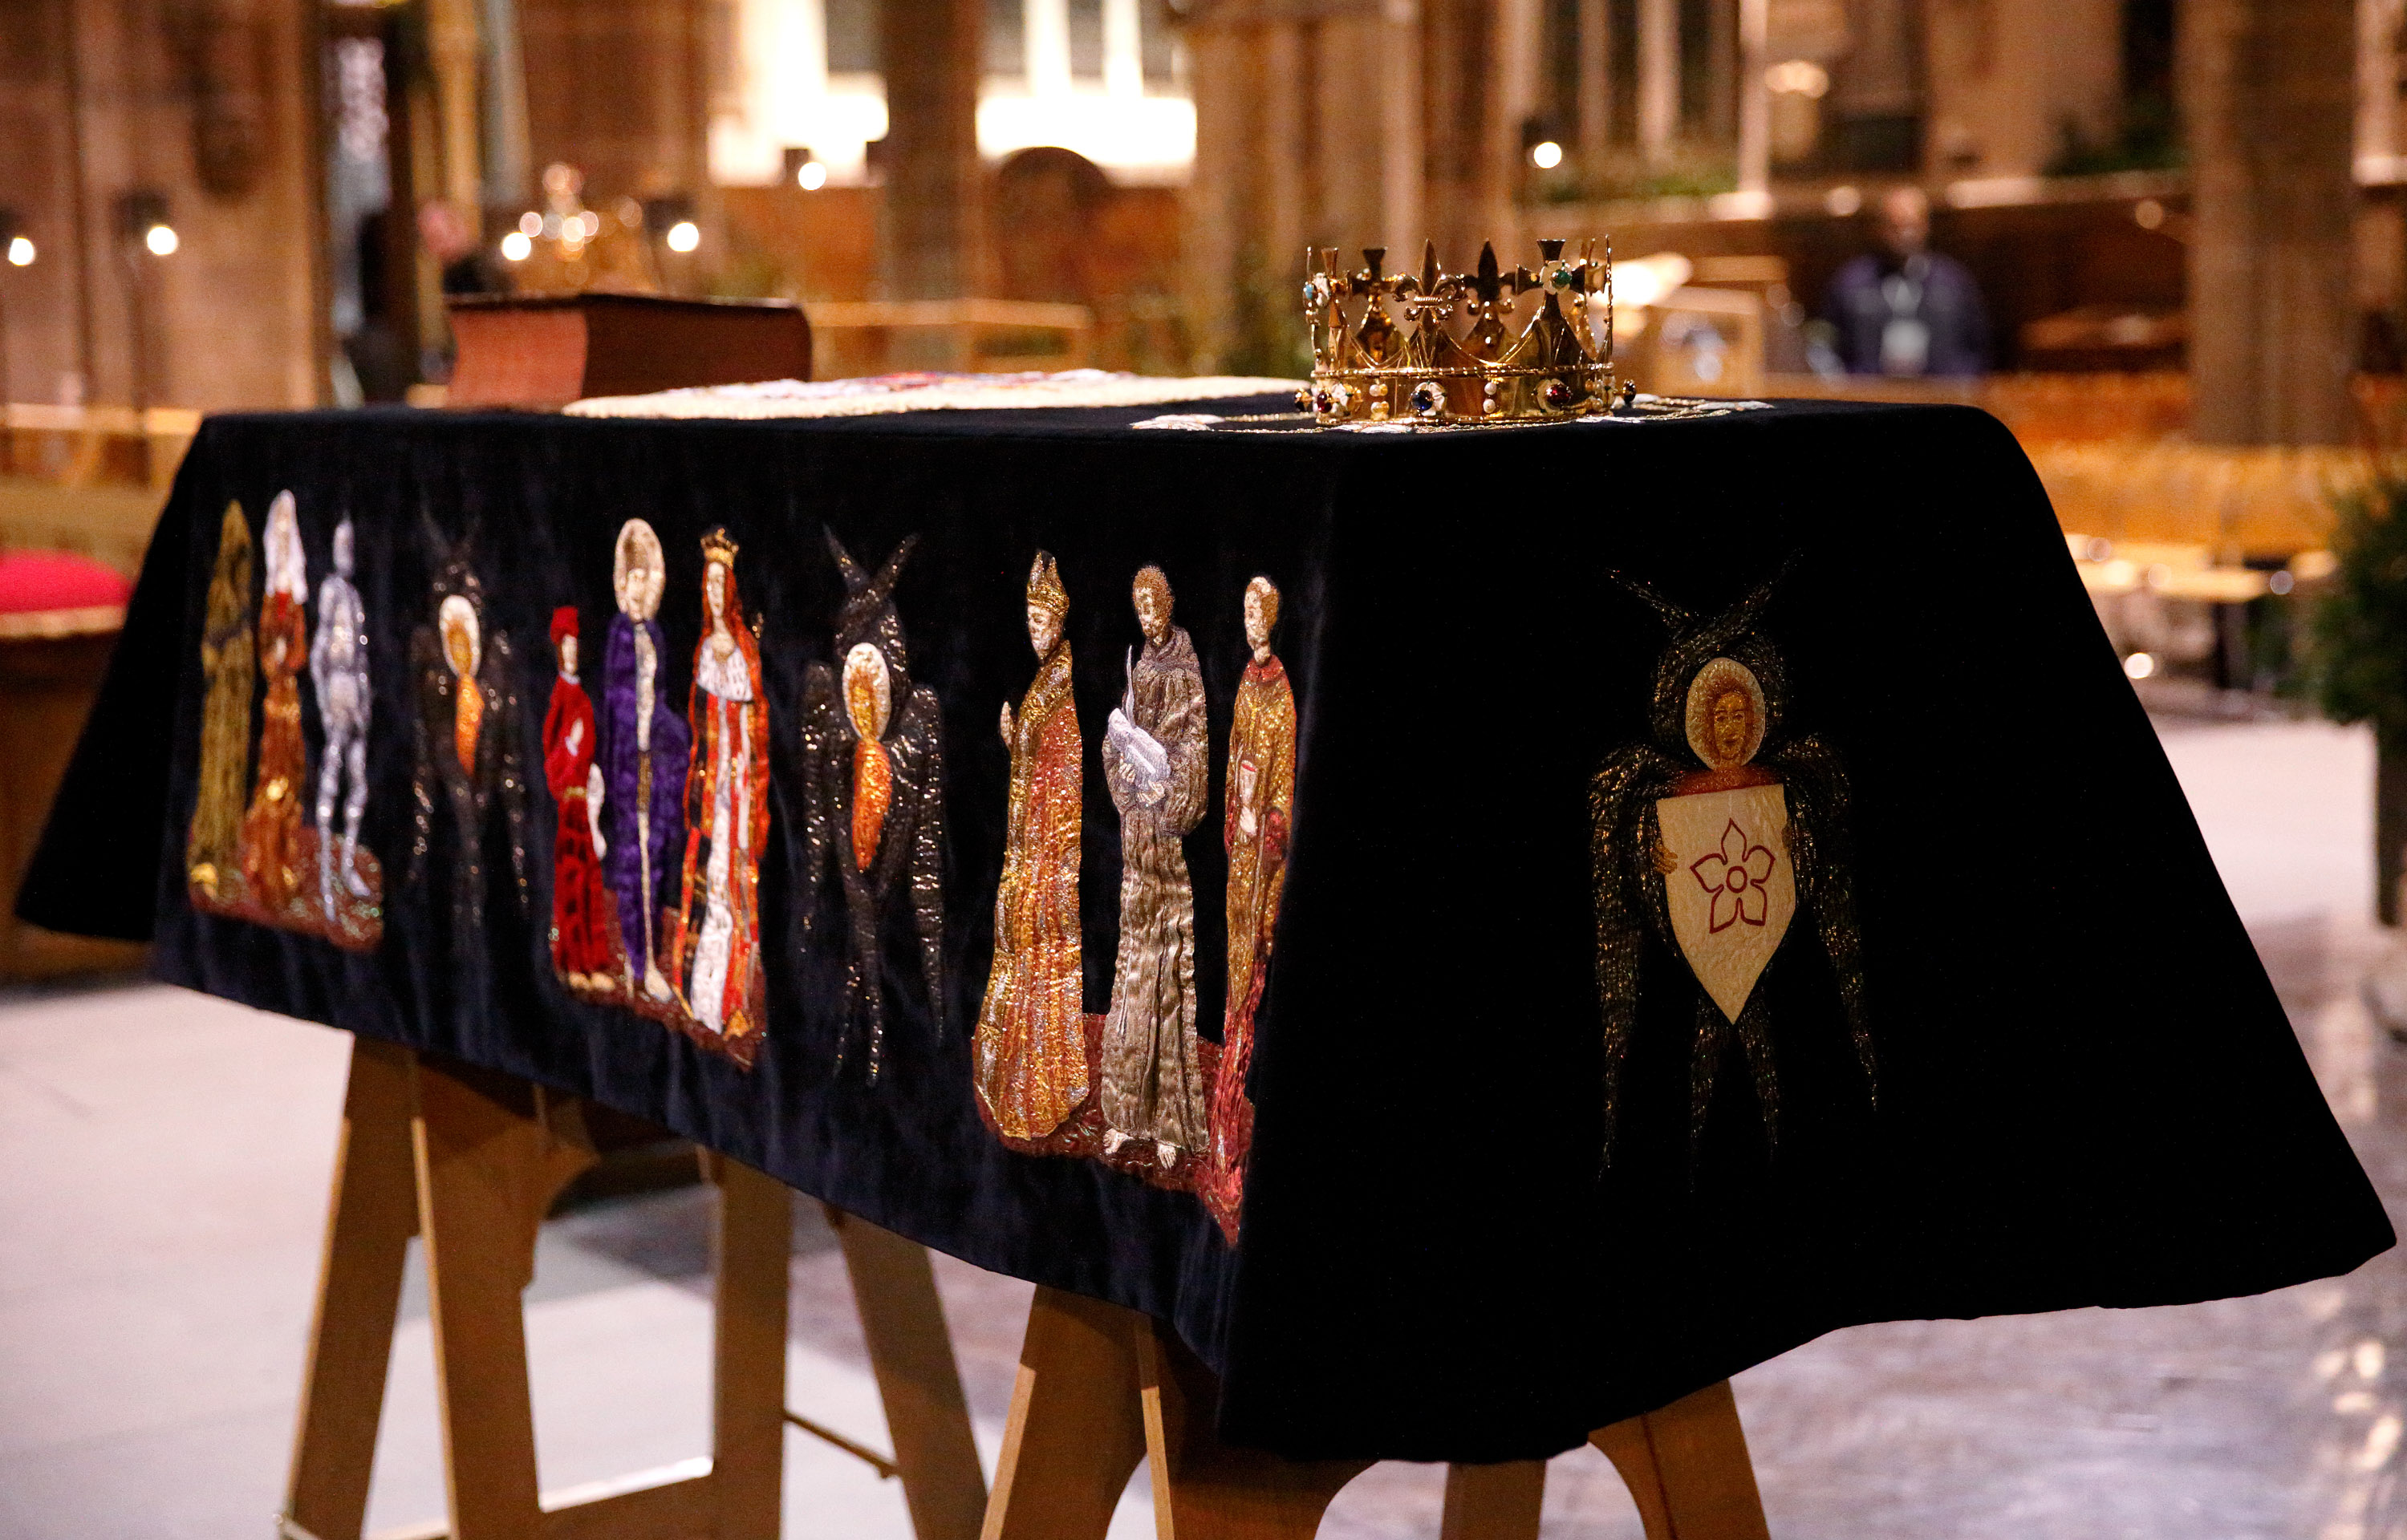 A coffin containing the skeleton of King Richard III sitting in repose inside Leicester Cathedral. (Photo by Max Mumby/Indigo/Getty Images)